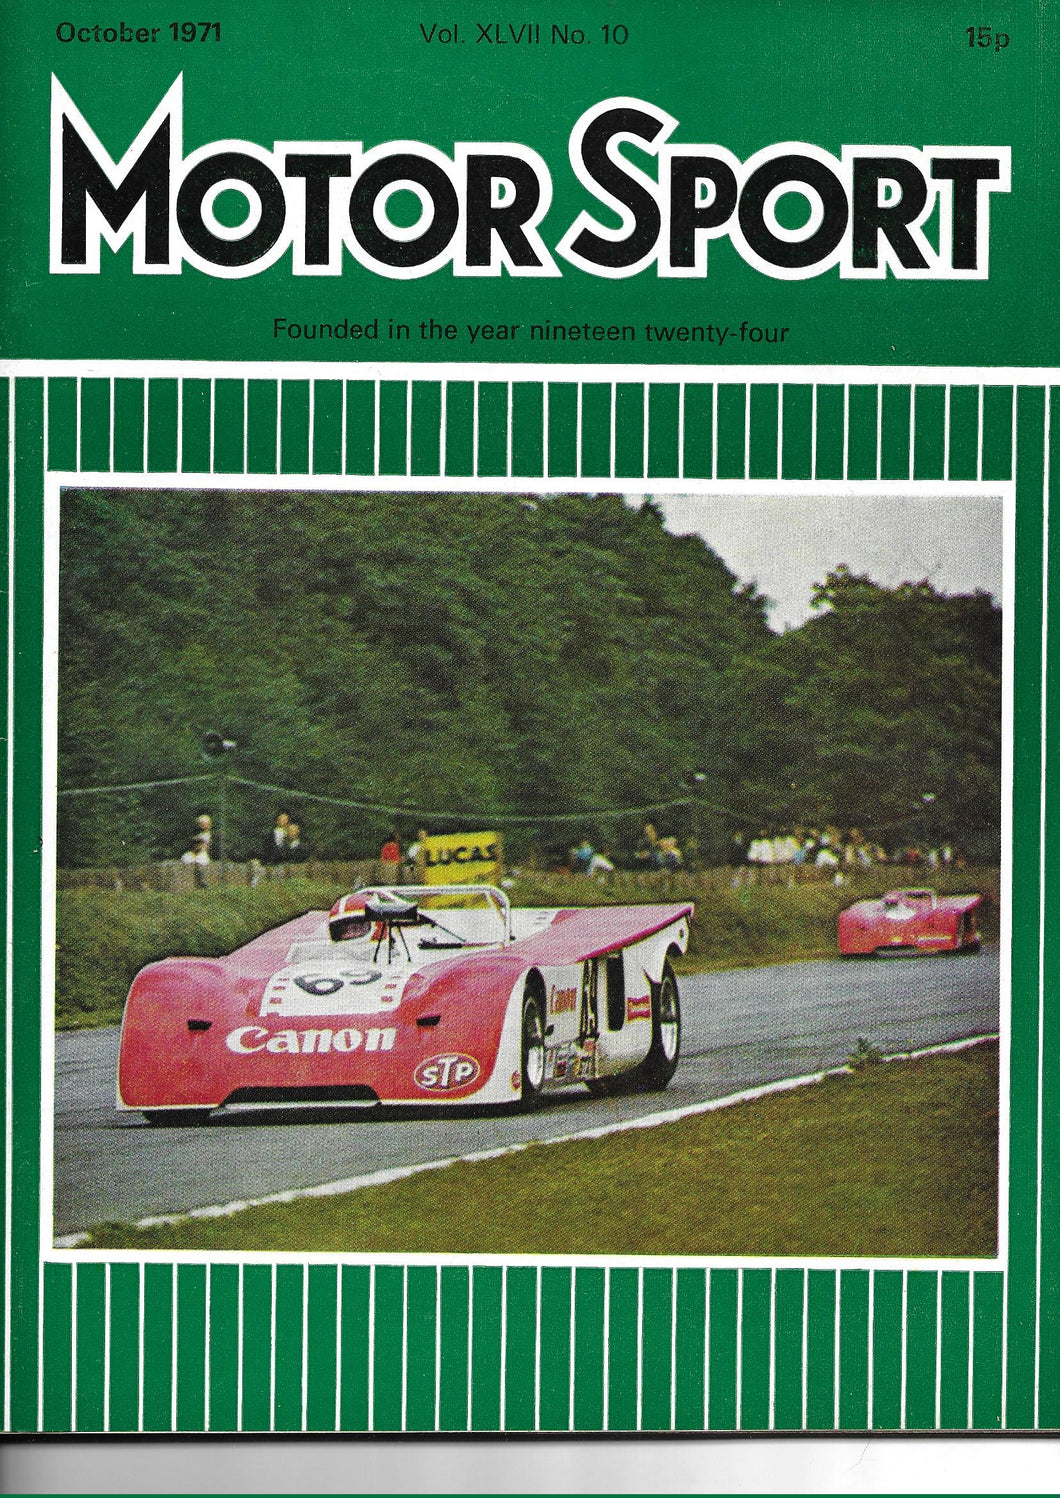 Motor Sport, Motorsport, Magazine, Vol XLVII No 10, October 1971, Very Good Condition